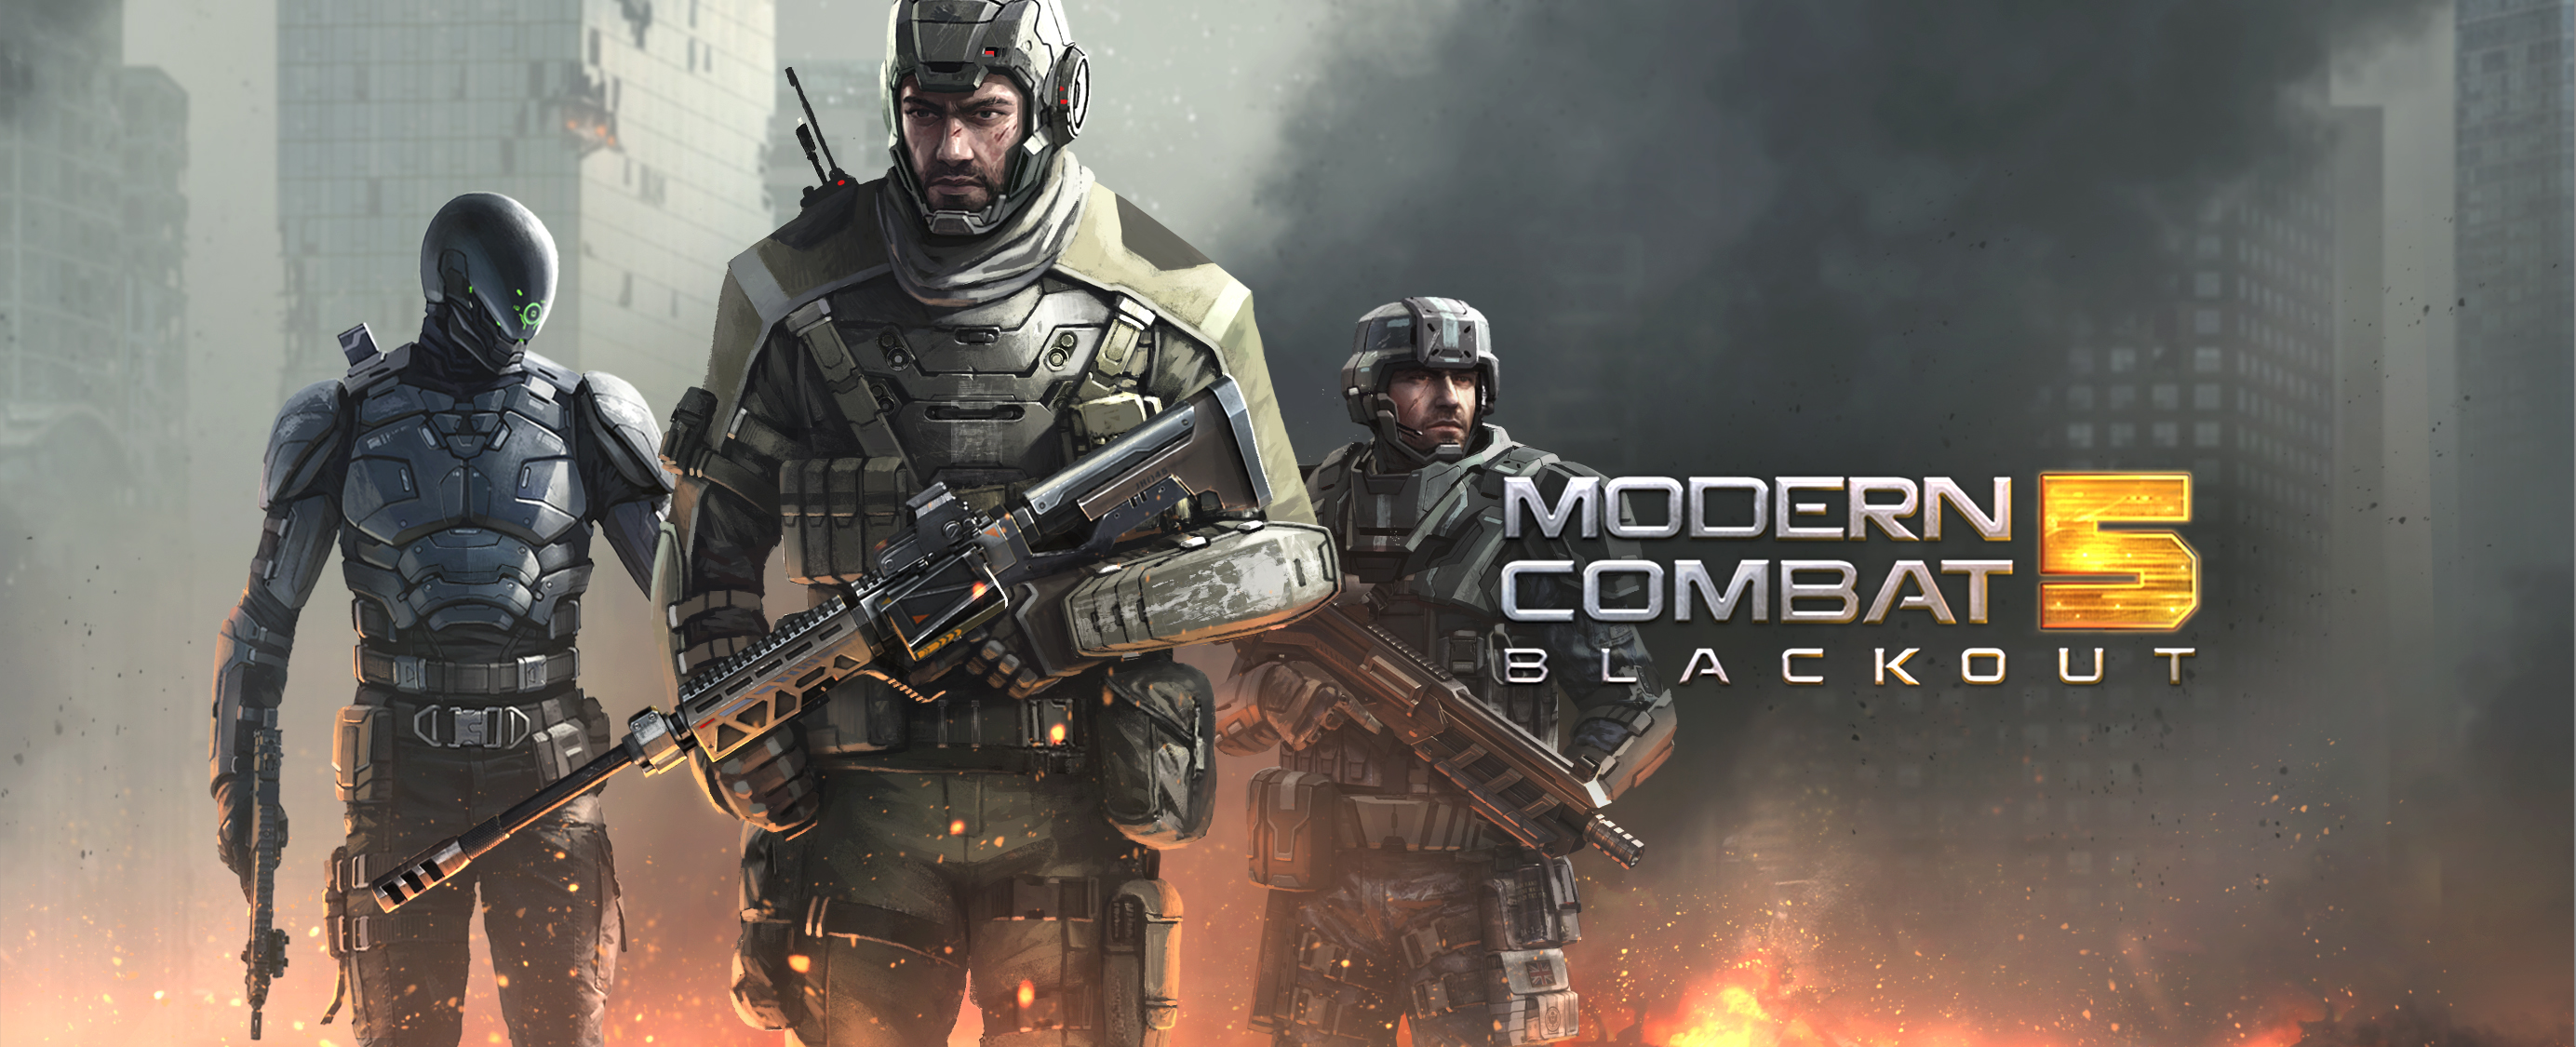 Modern Combat 5 Blackout android game 2016